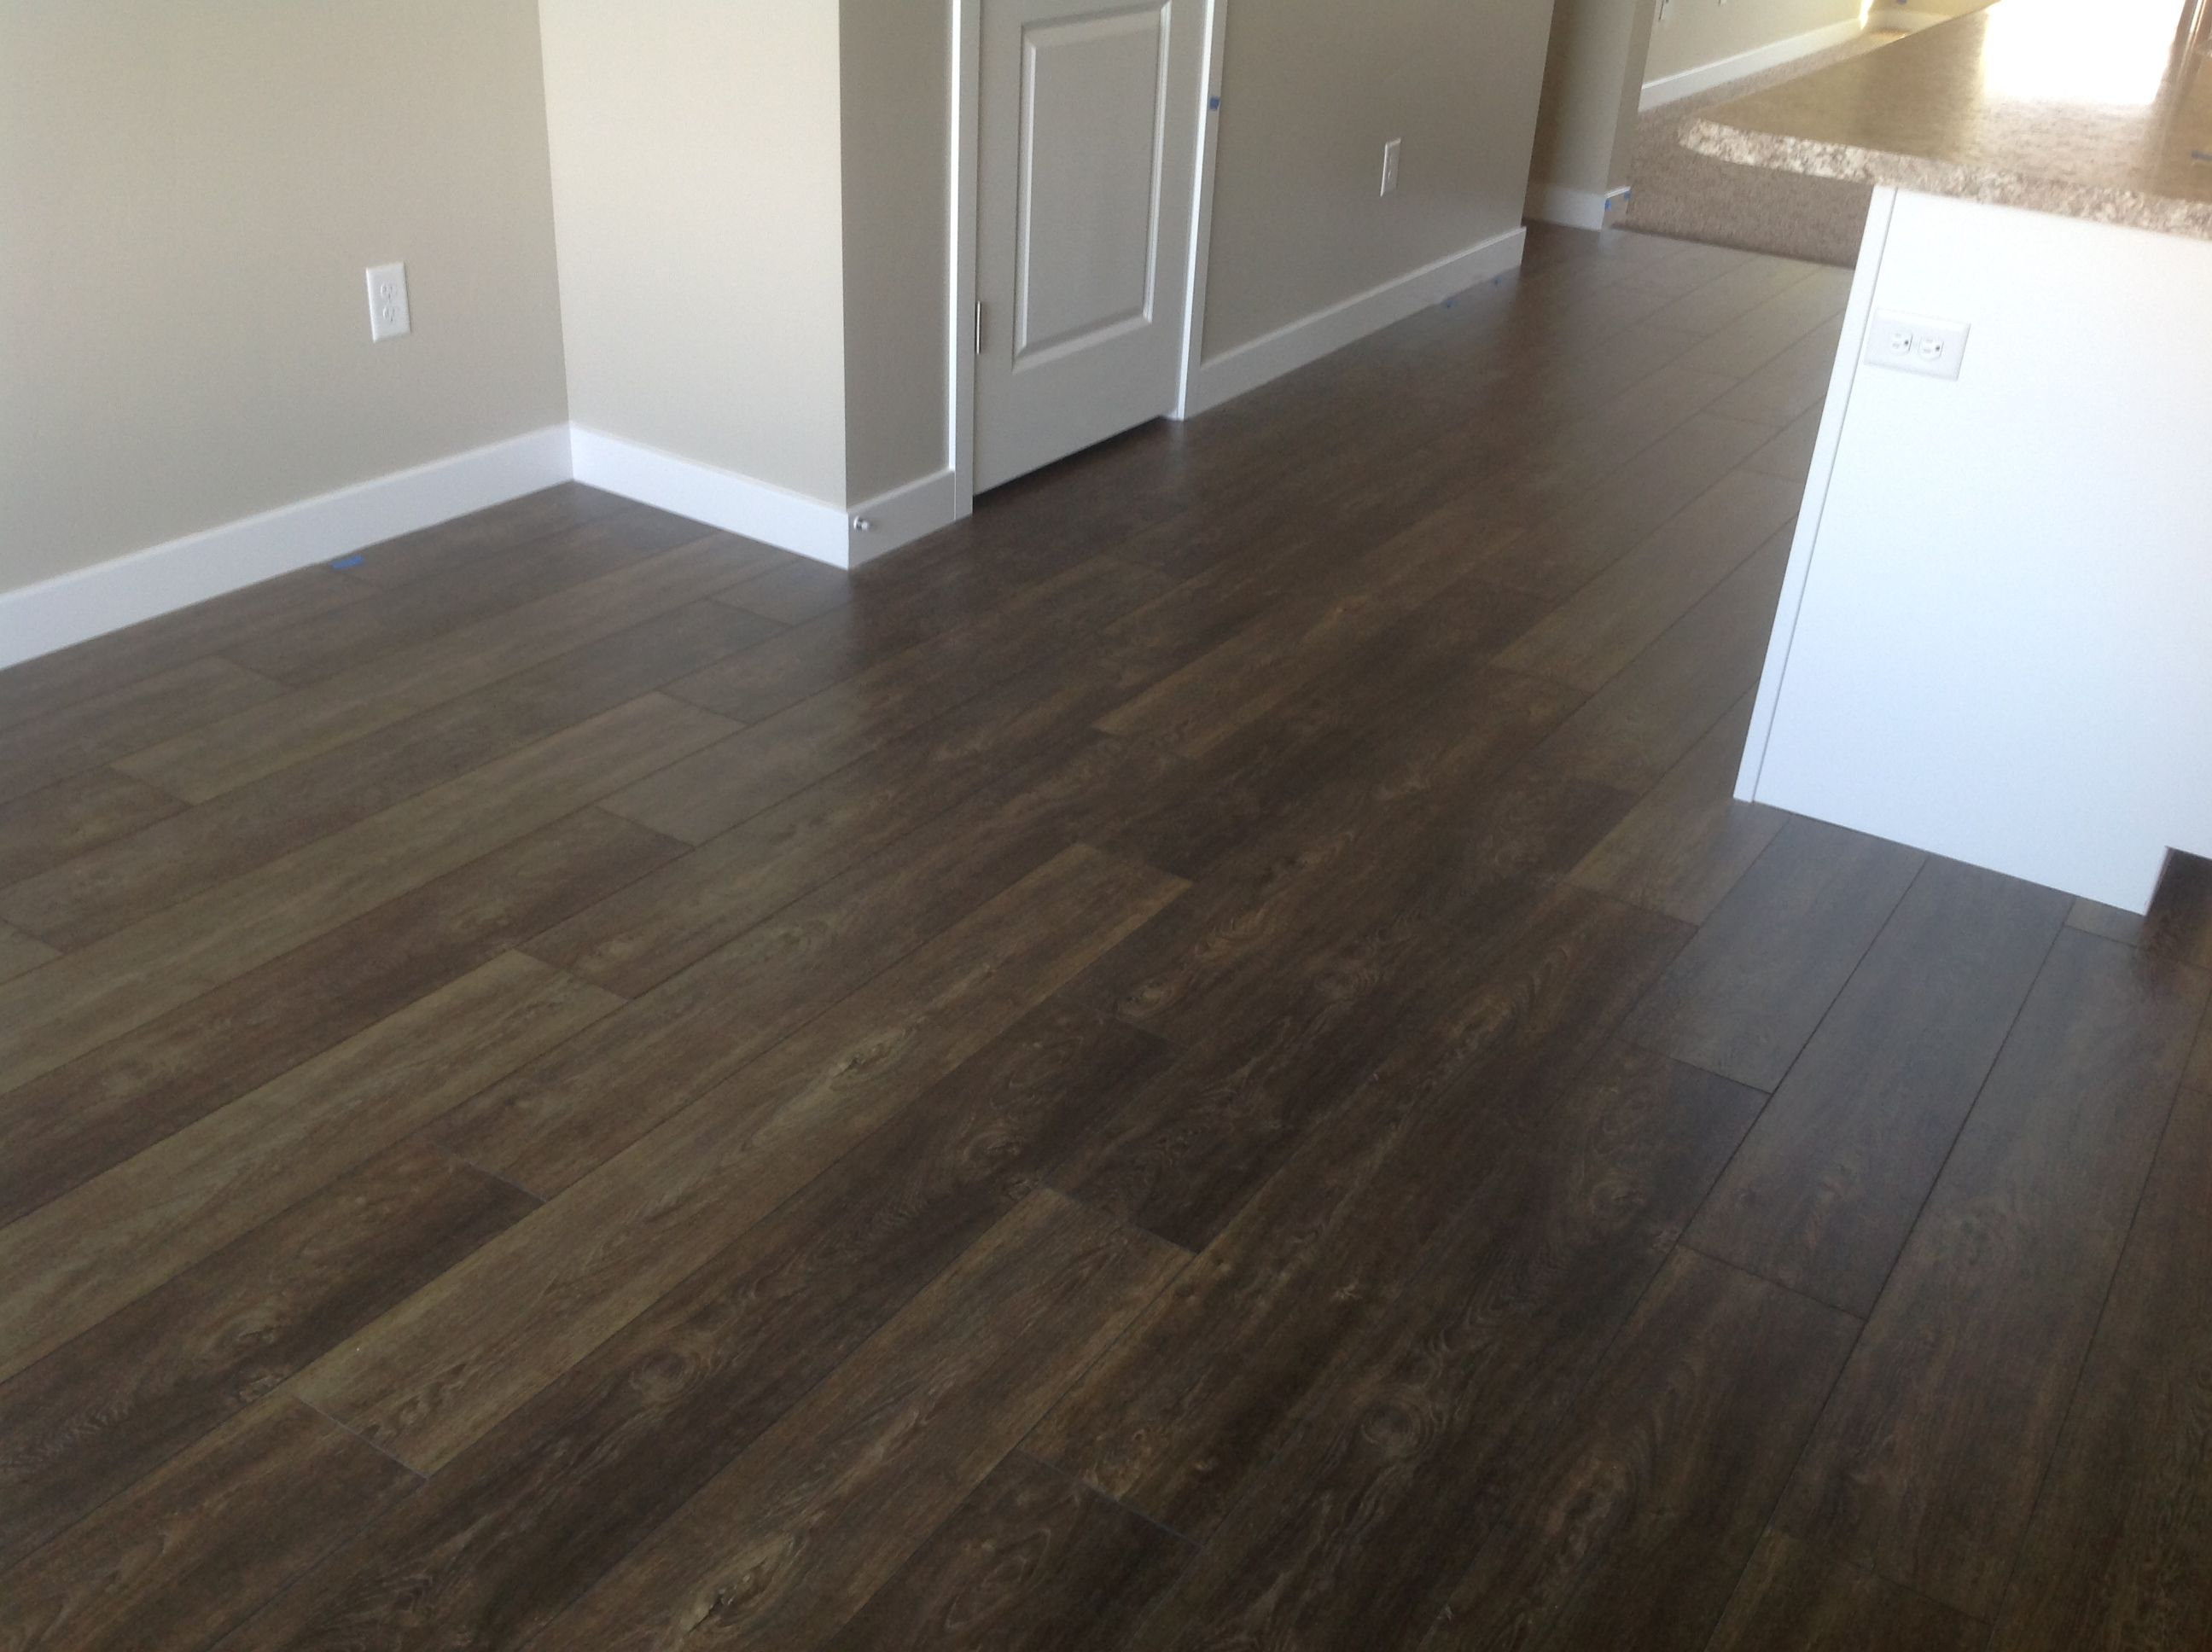 French Oak From The Mannington Restoration S Collection Is